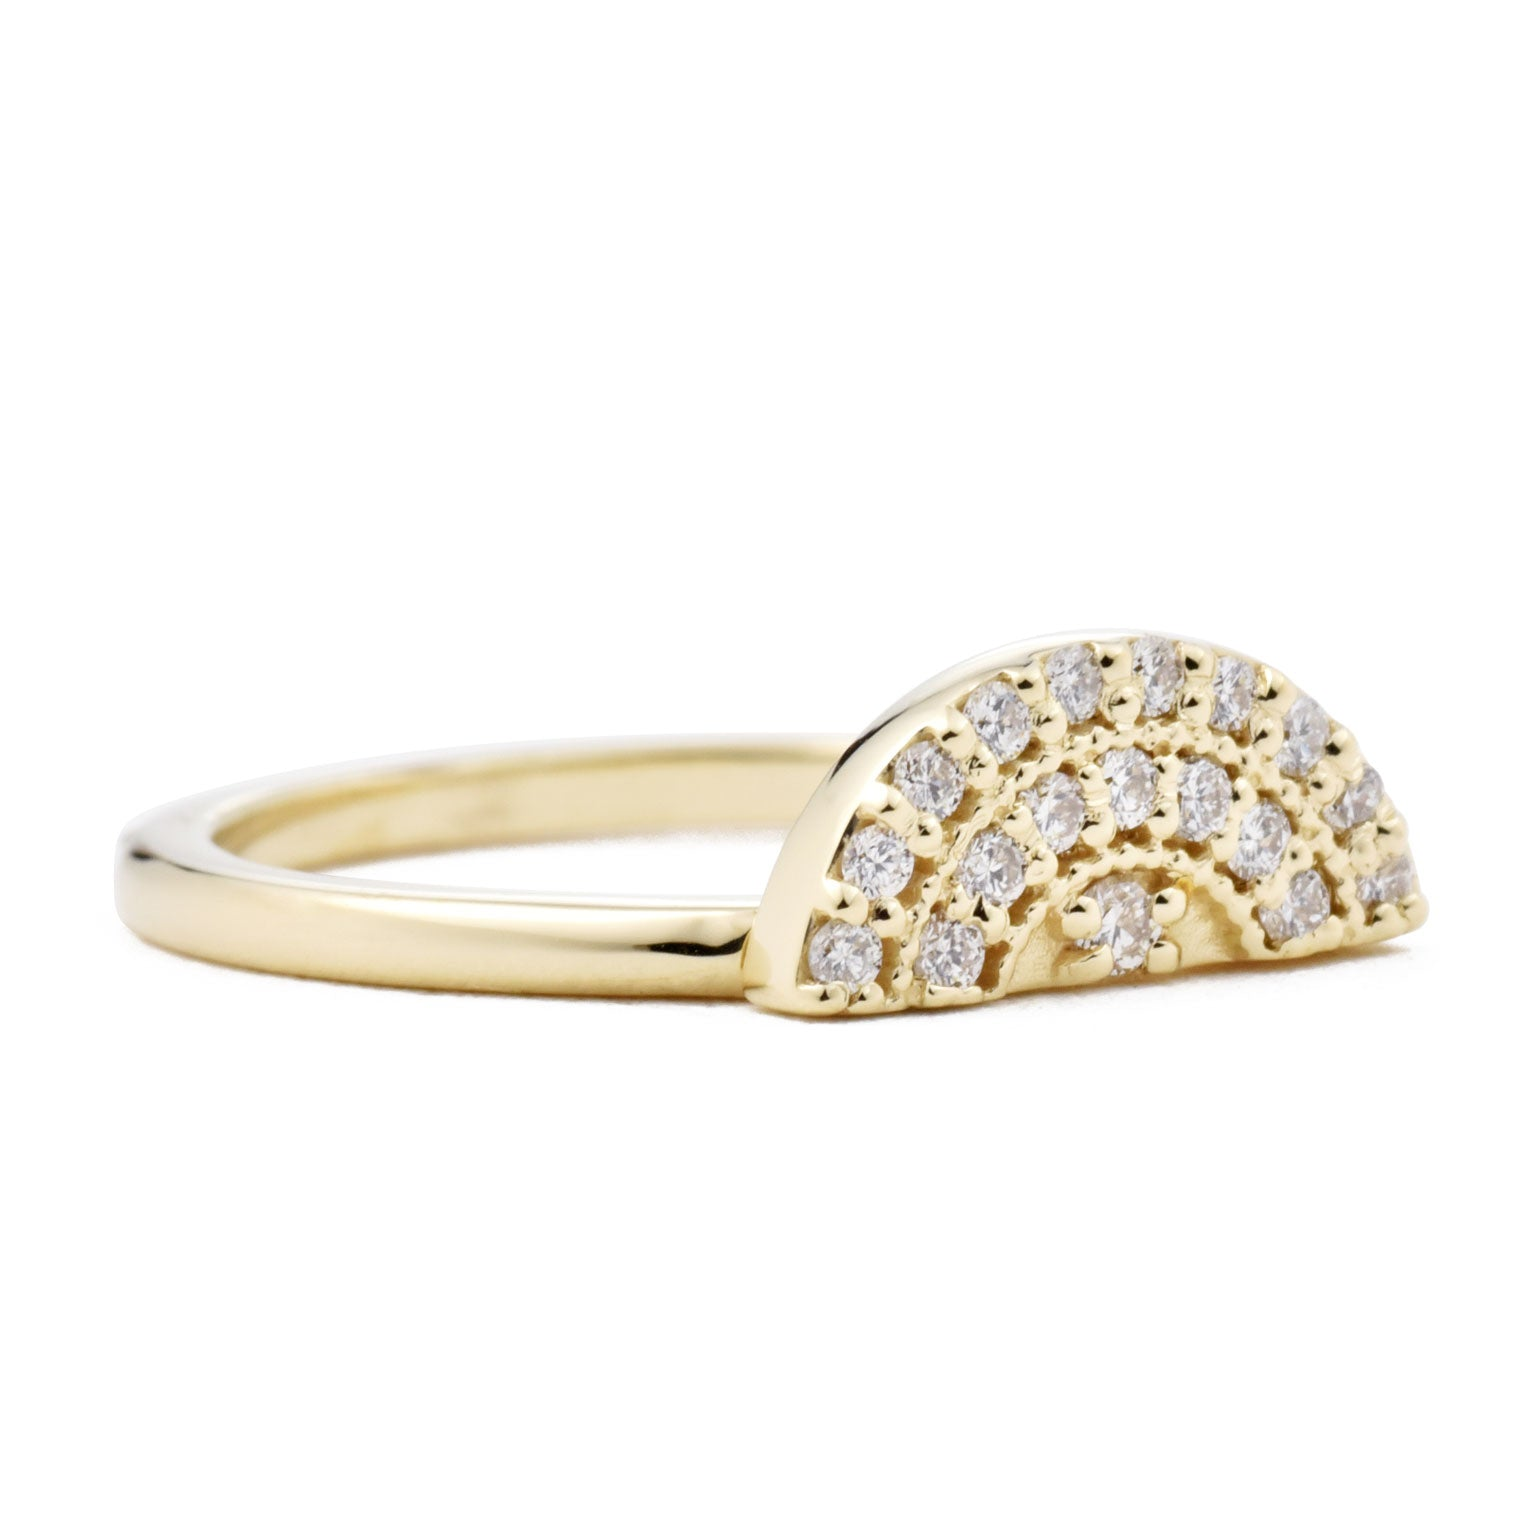 Half Moon Pavé Diamond Ring shown from the front